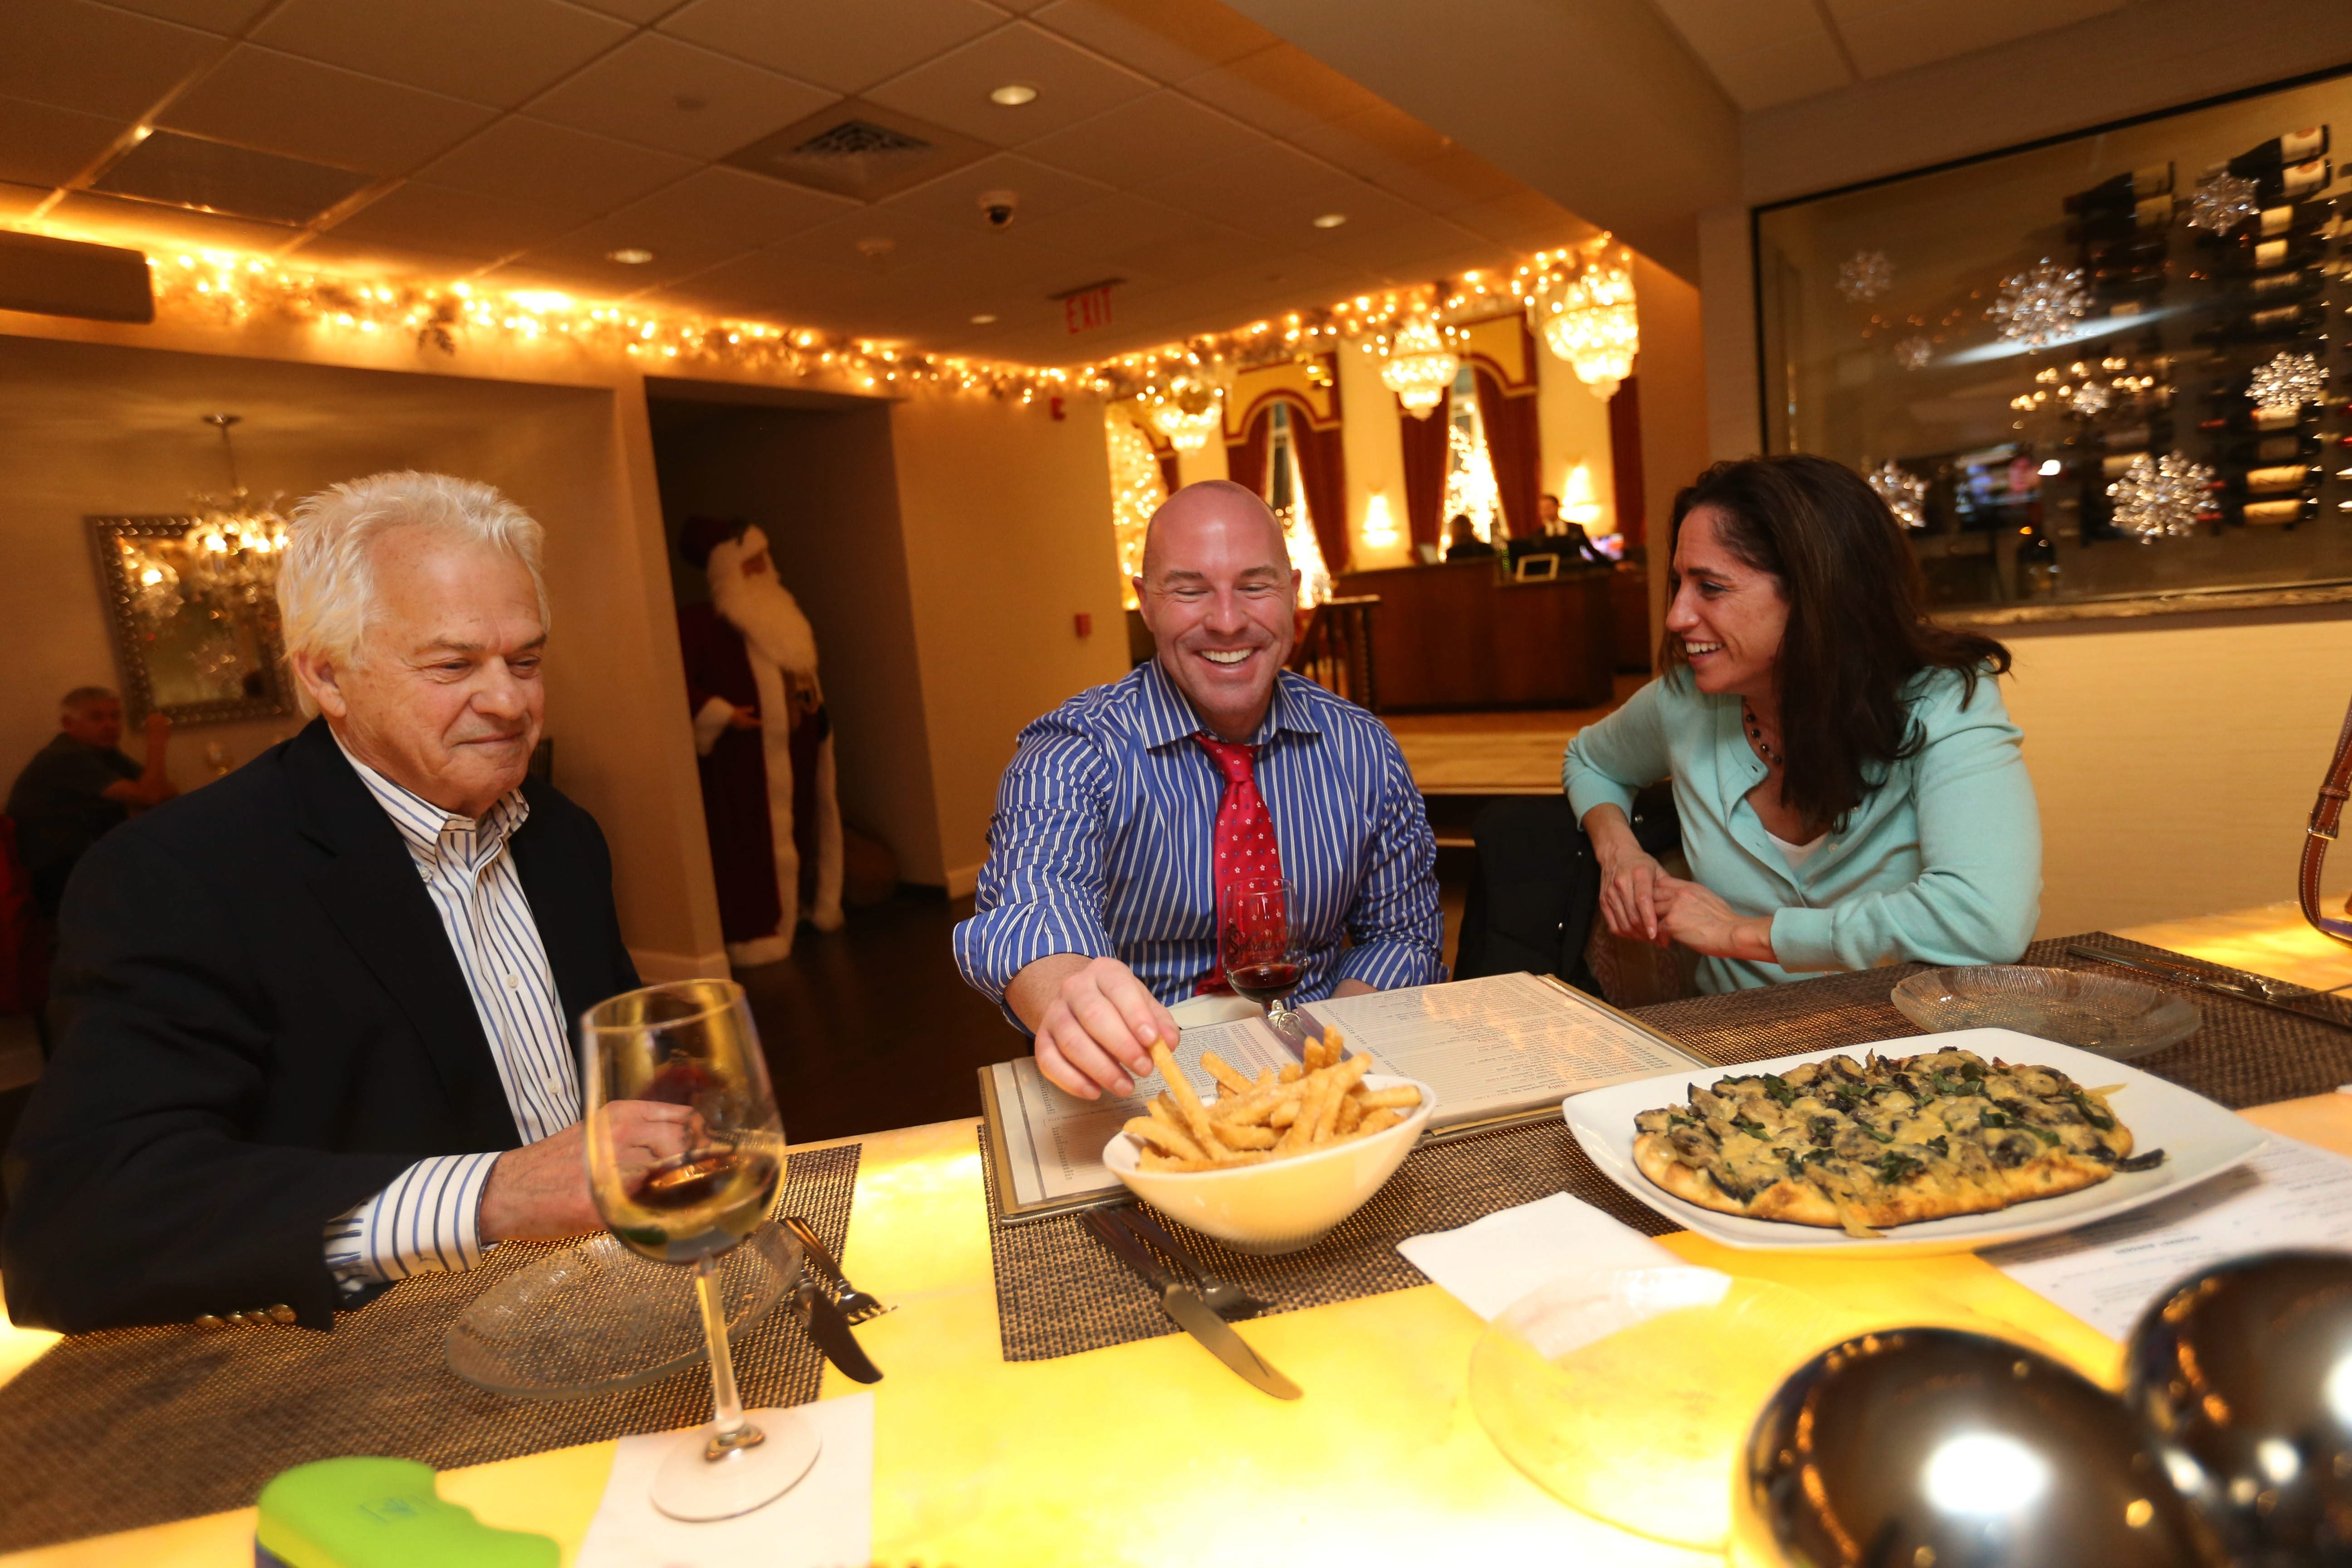 The Chandelier Bar at Salvatore's Italian Garden is newly revamped and is a destination in itself. Hanging out from left are Jerry Meyers of Williamsville, Anthony Pandolfi of Lancaster and Amy Pohlman of Amherst.  Photo taken, Wednesday, Nov. 18, 2015.  (Sharon Cantillon/Buffalo News)